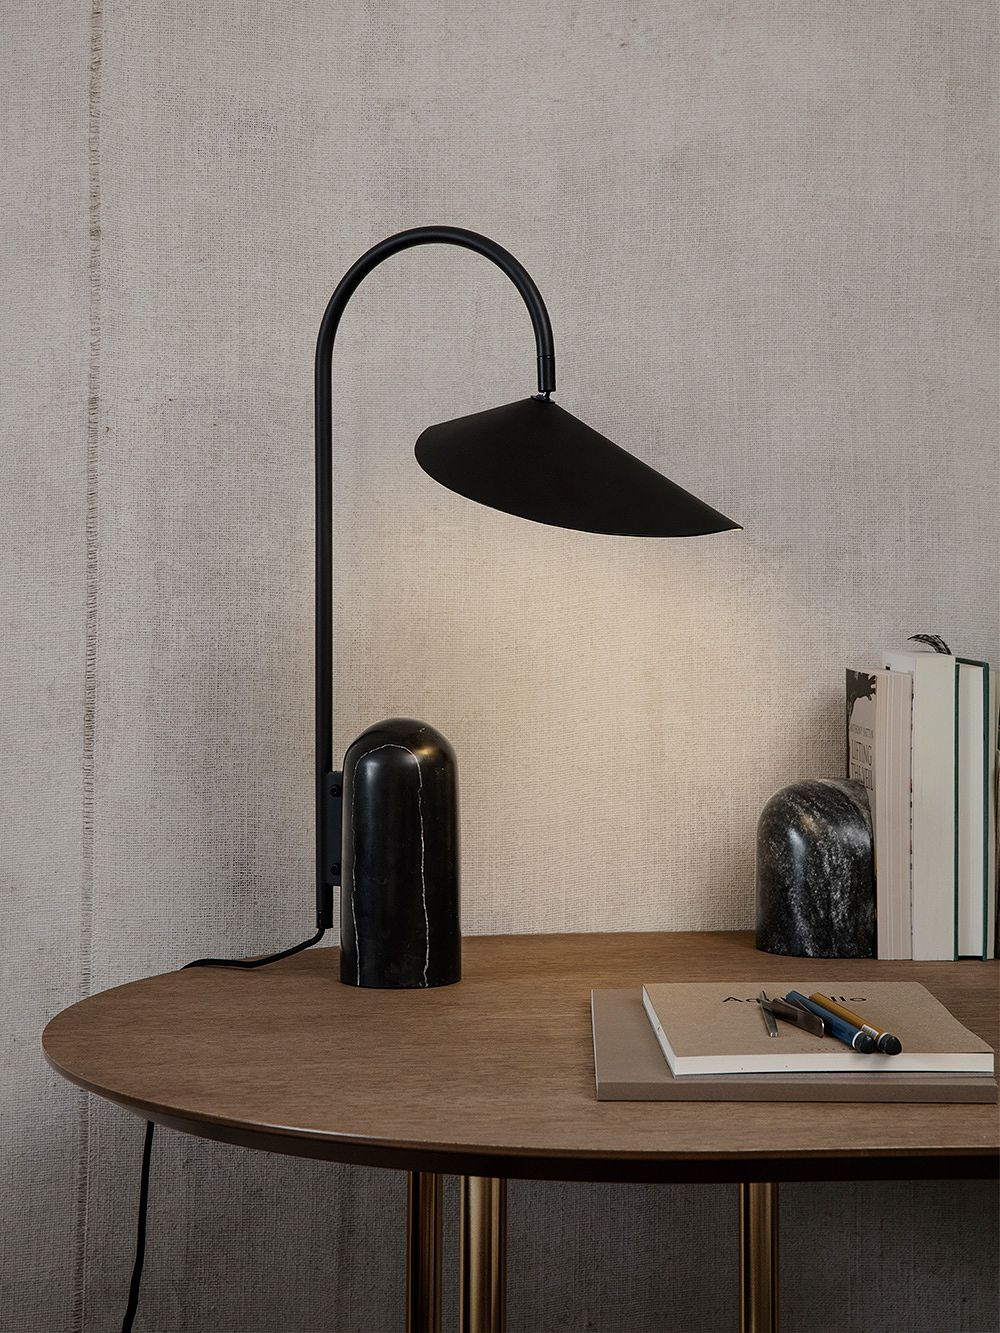 Arum lamp by Ferm Living